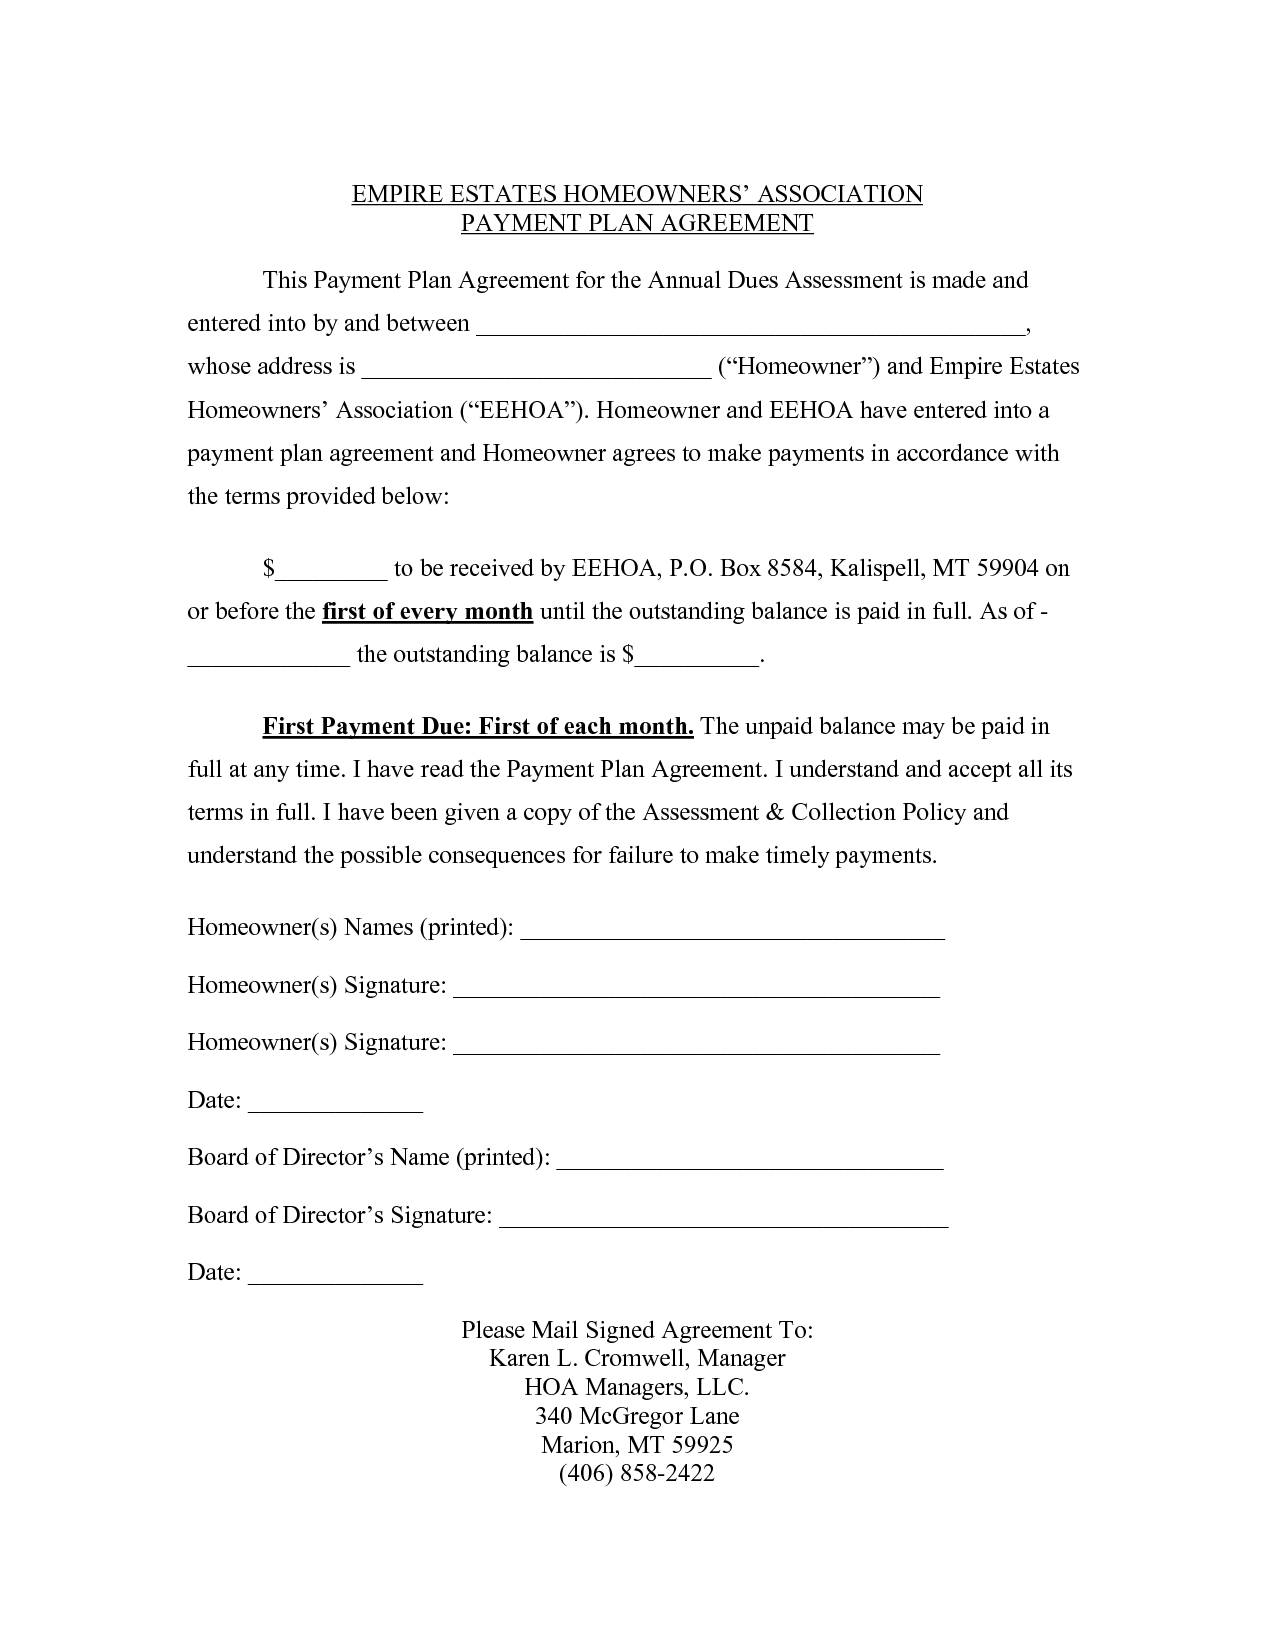 Loan Agreement Contract Template